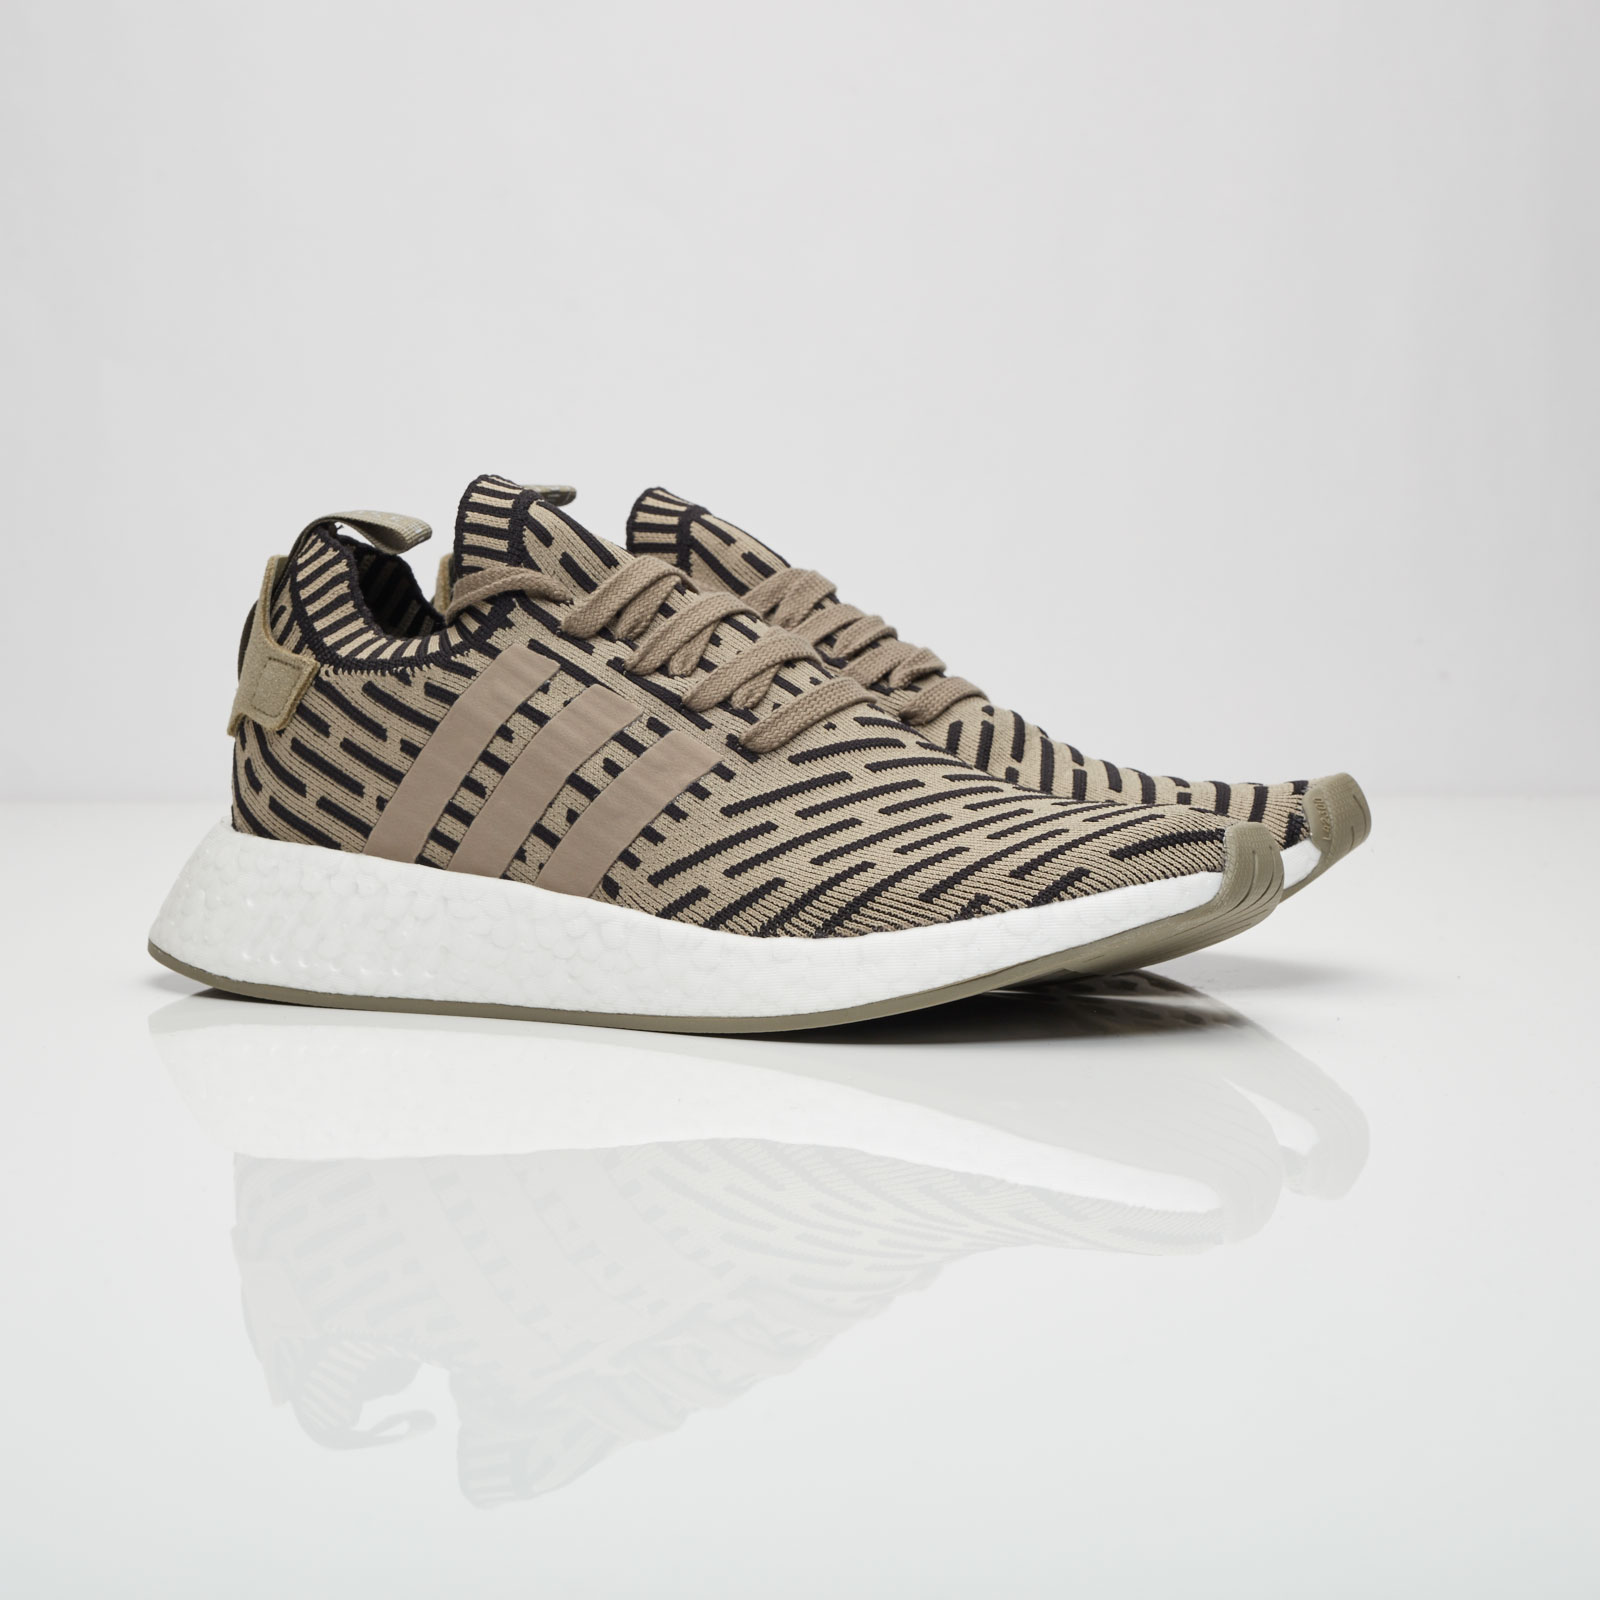 new product d07e2 ed69a adidas NMD_R2 PK - Ba7198 - Sneakersnstuff | sneakers ...